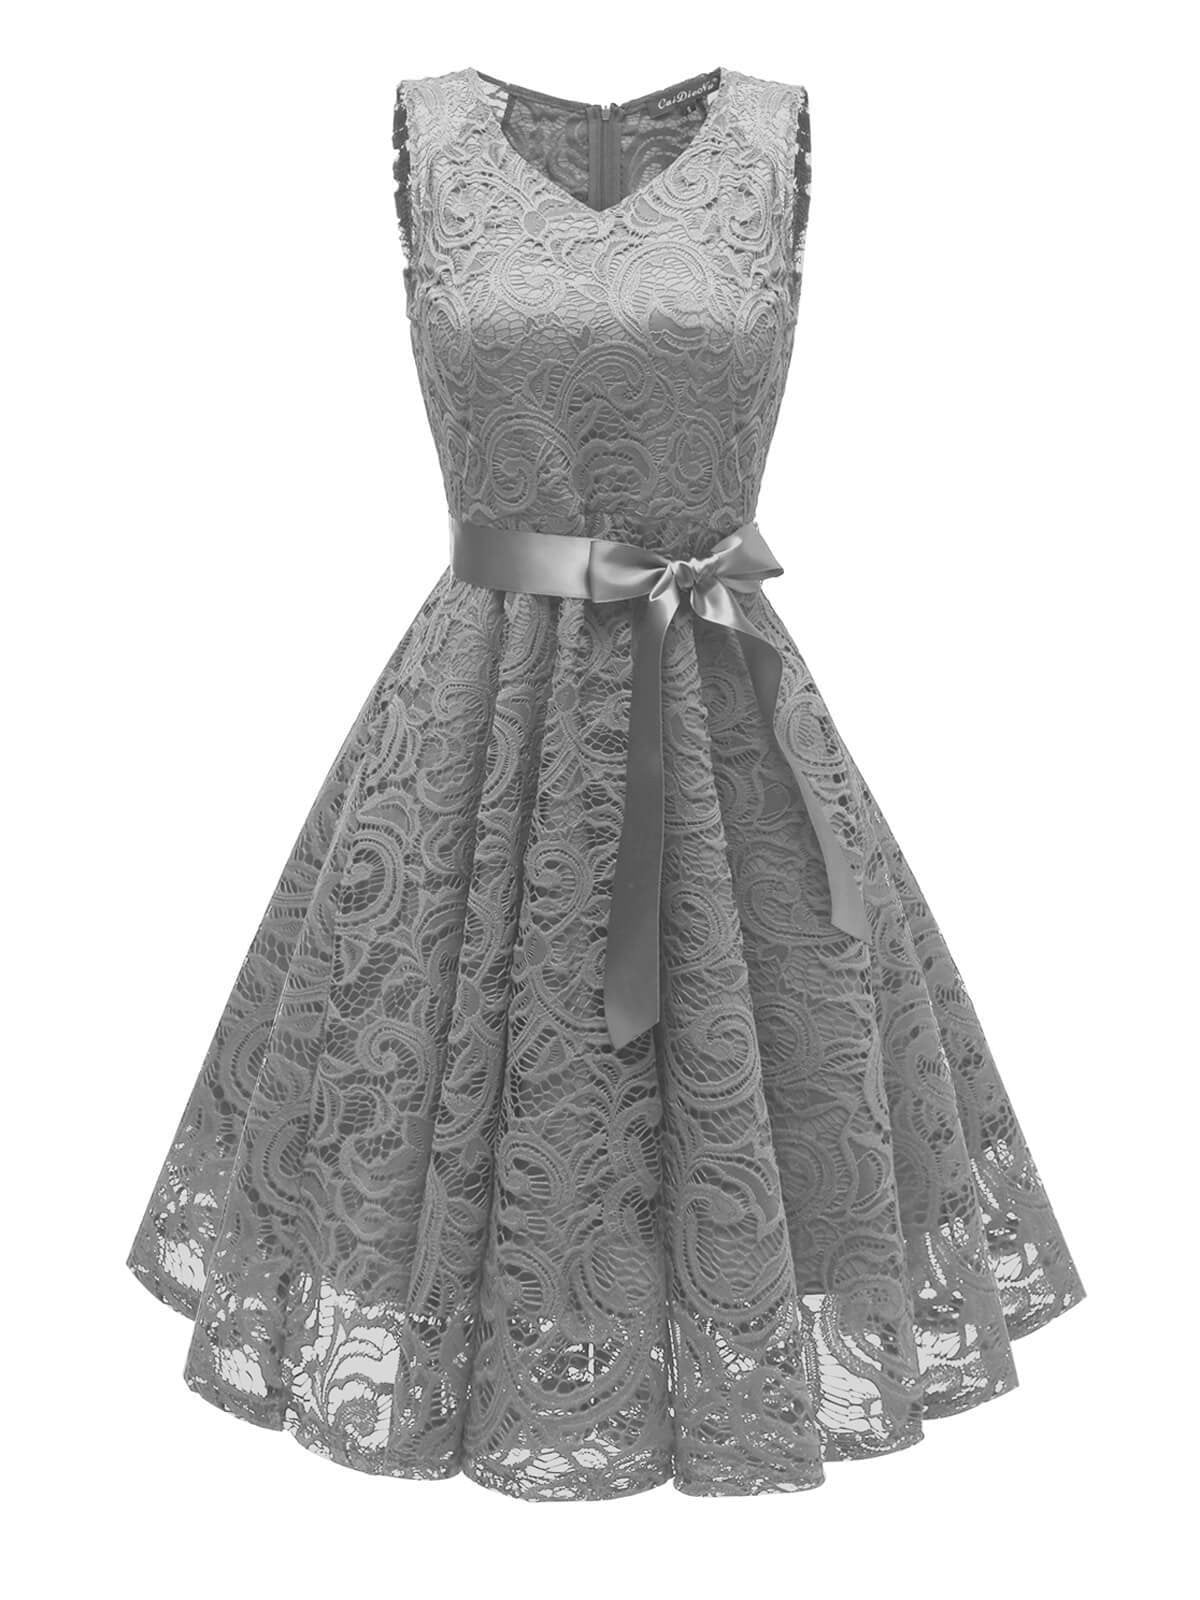 1950s Lace Floral Bow Dress